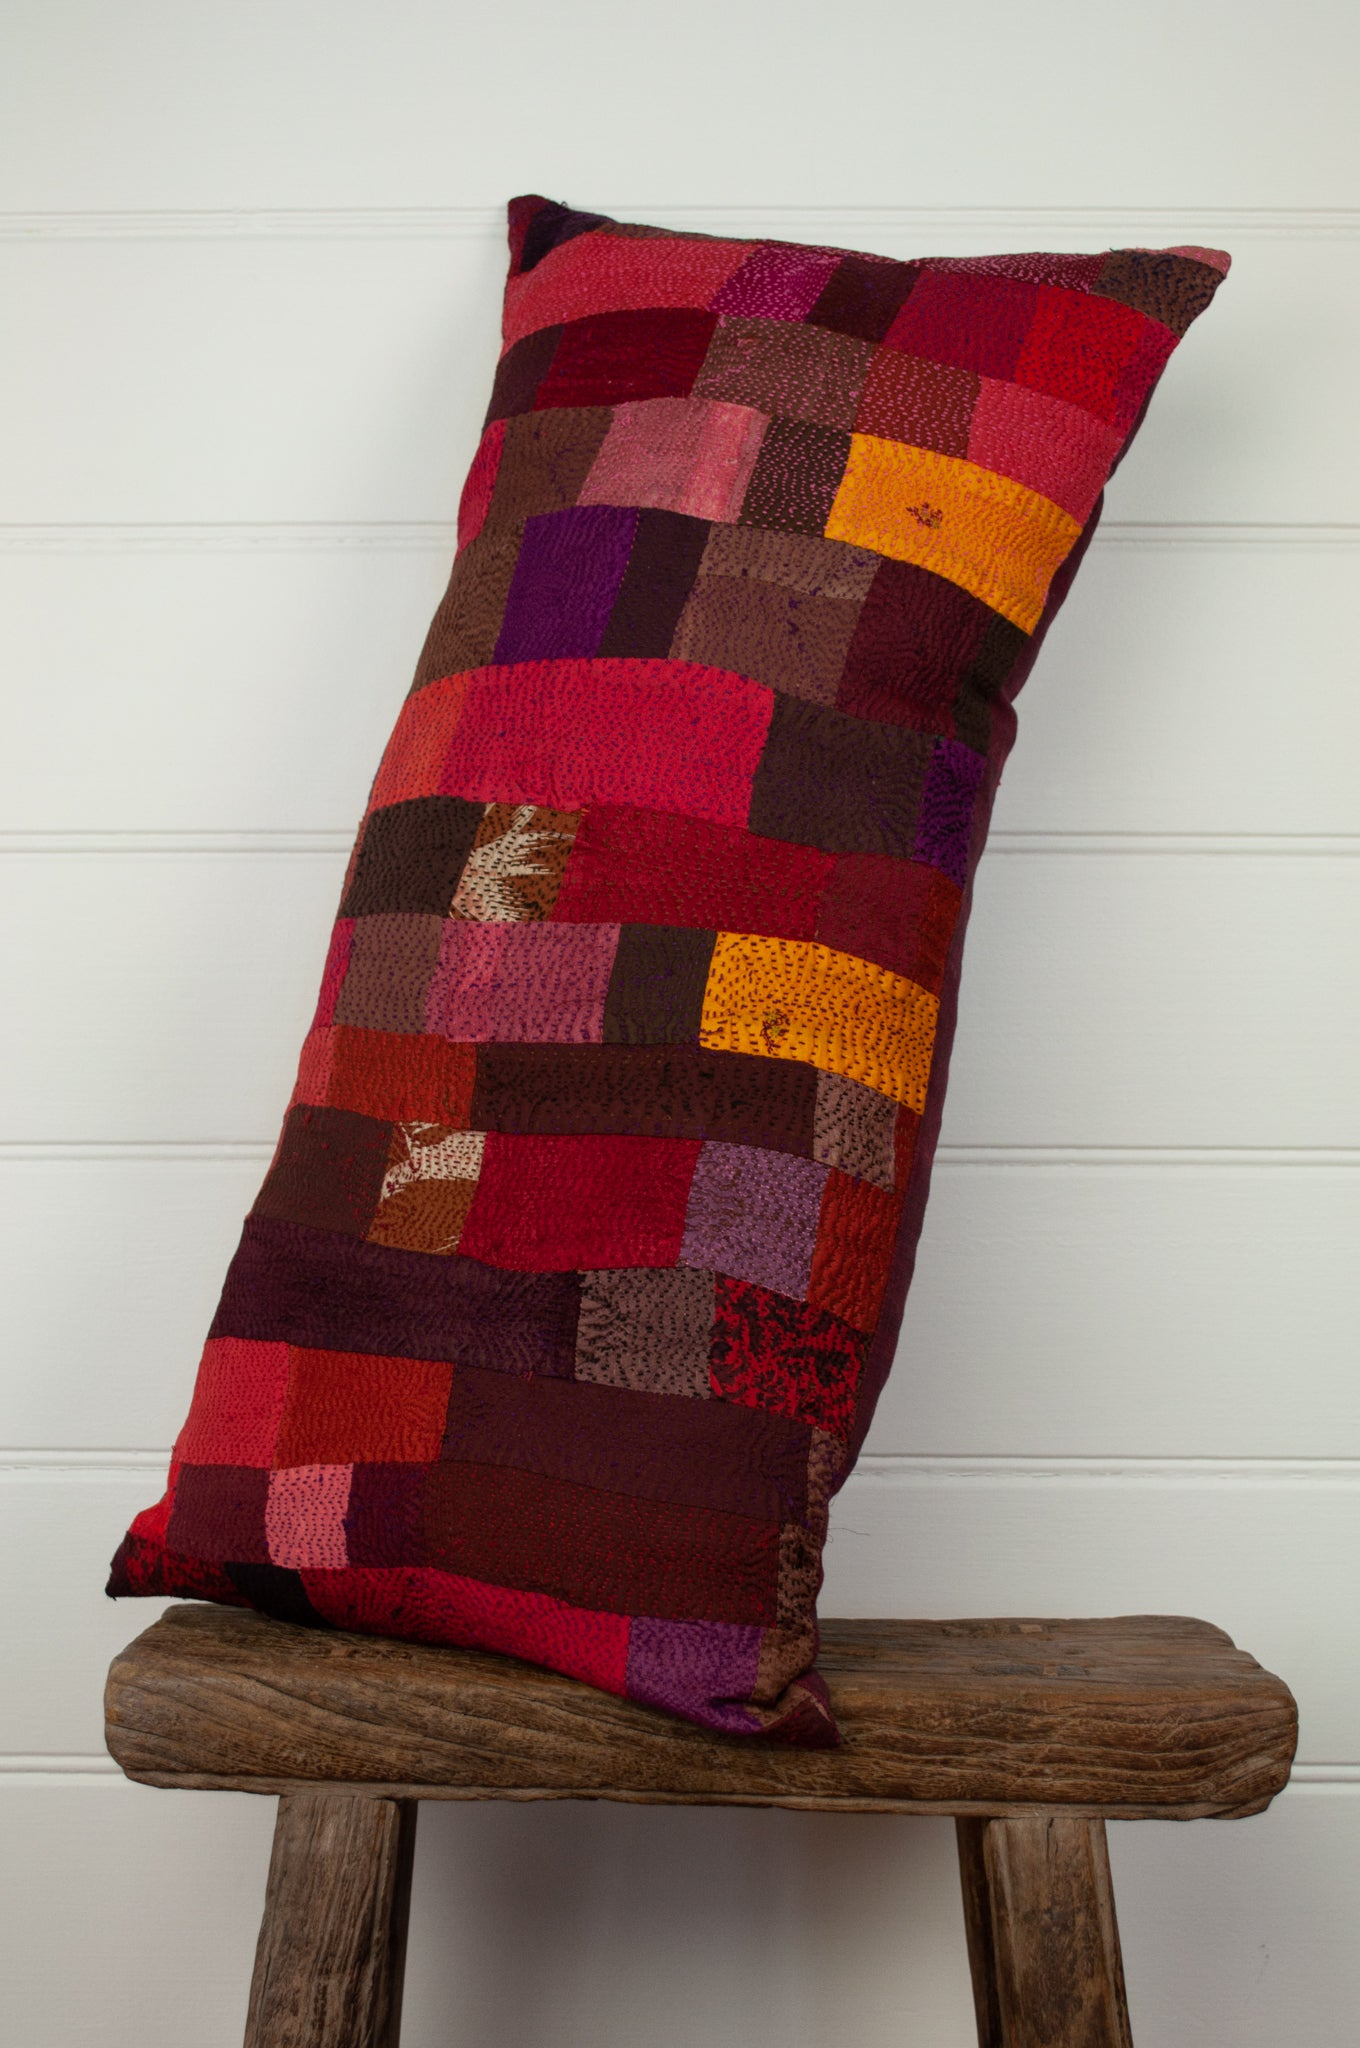 Vintage silk kantha bolster cushion, feather insert included, in shades of cherry red, rose, chocolate and gold.